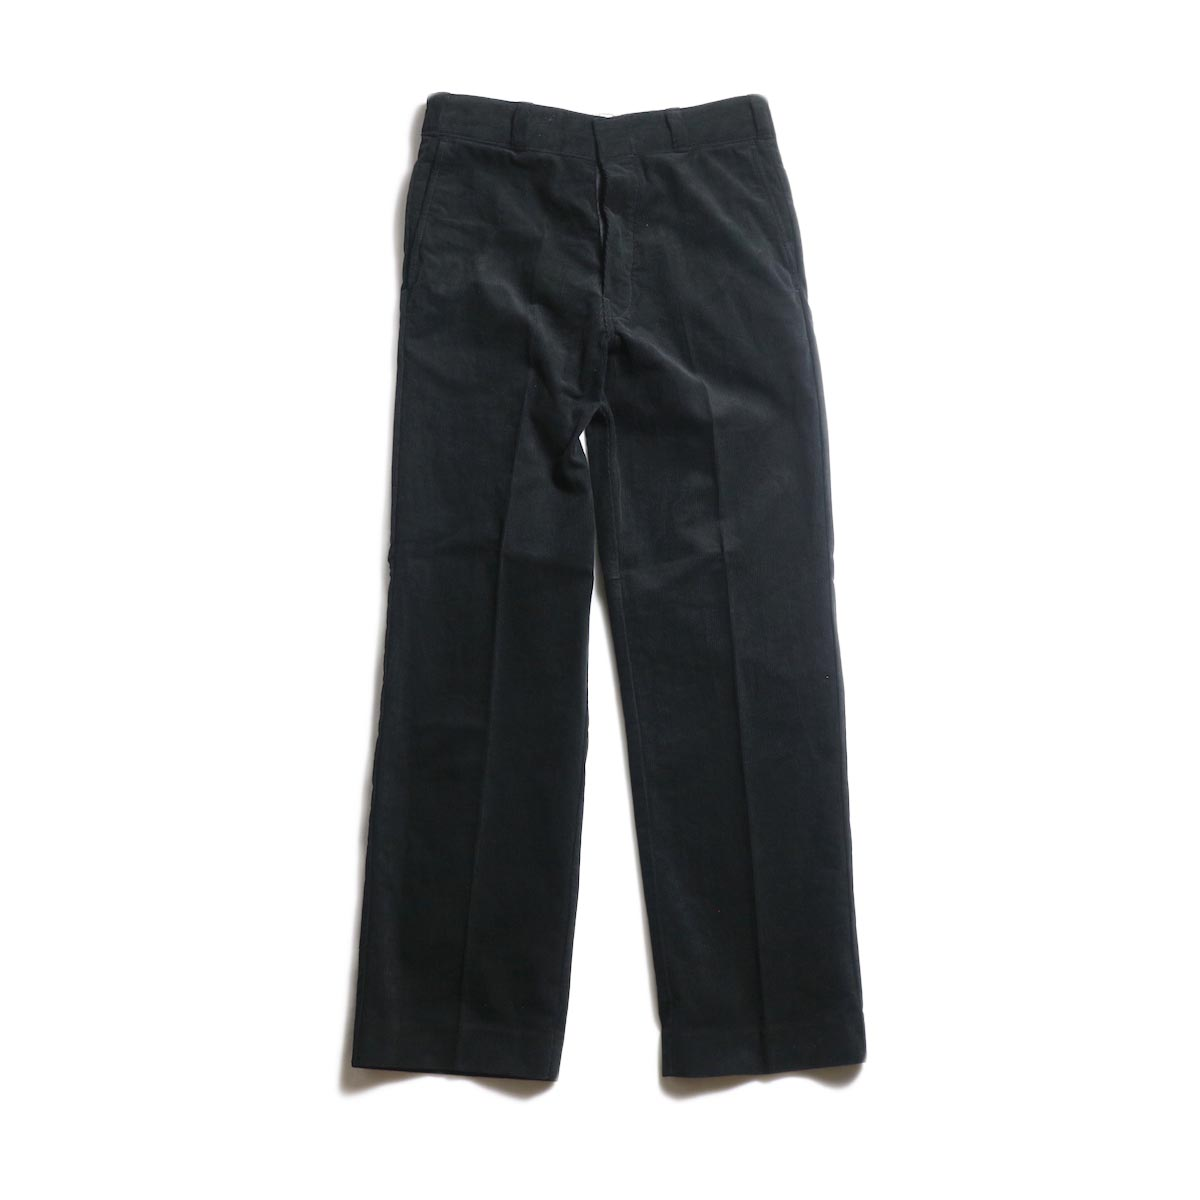 UNUSED × Dickies / UW0774 corduroy pant -Black